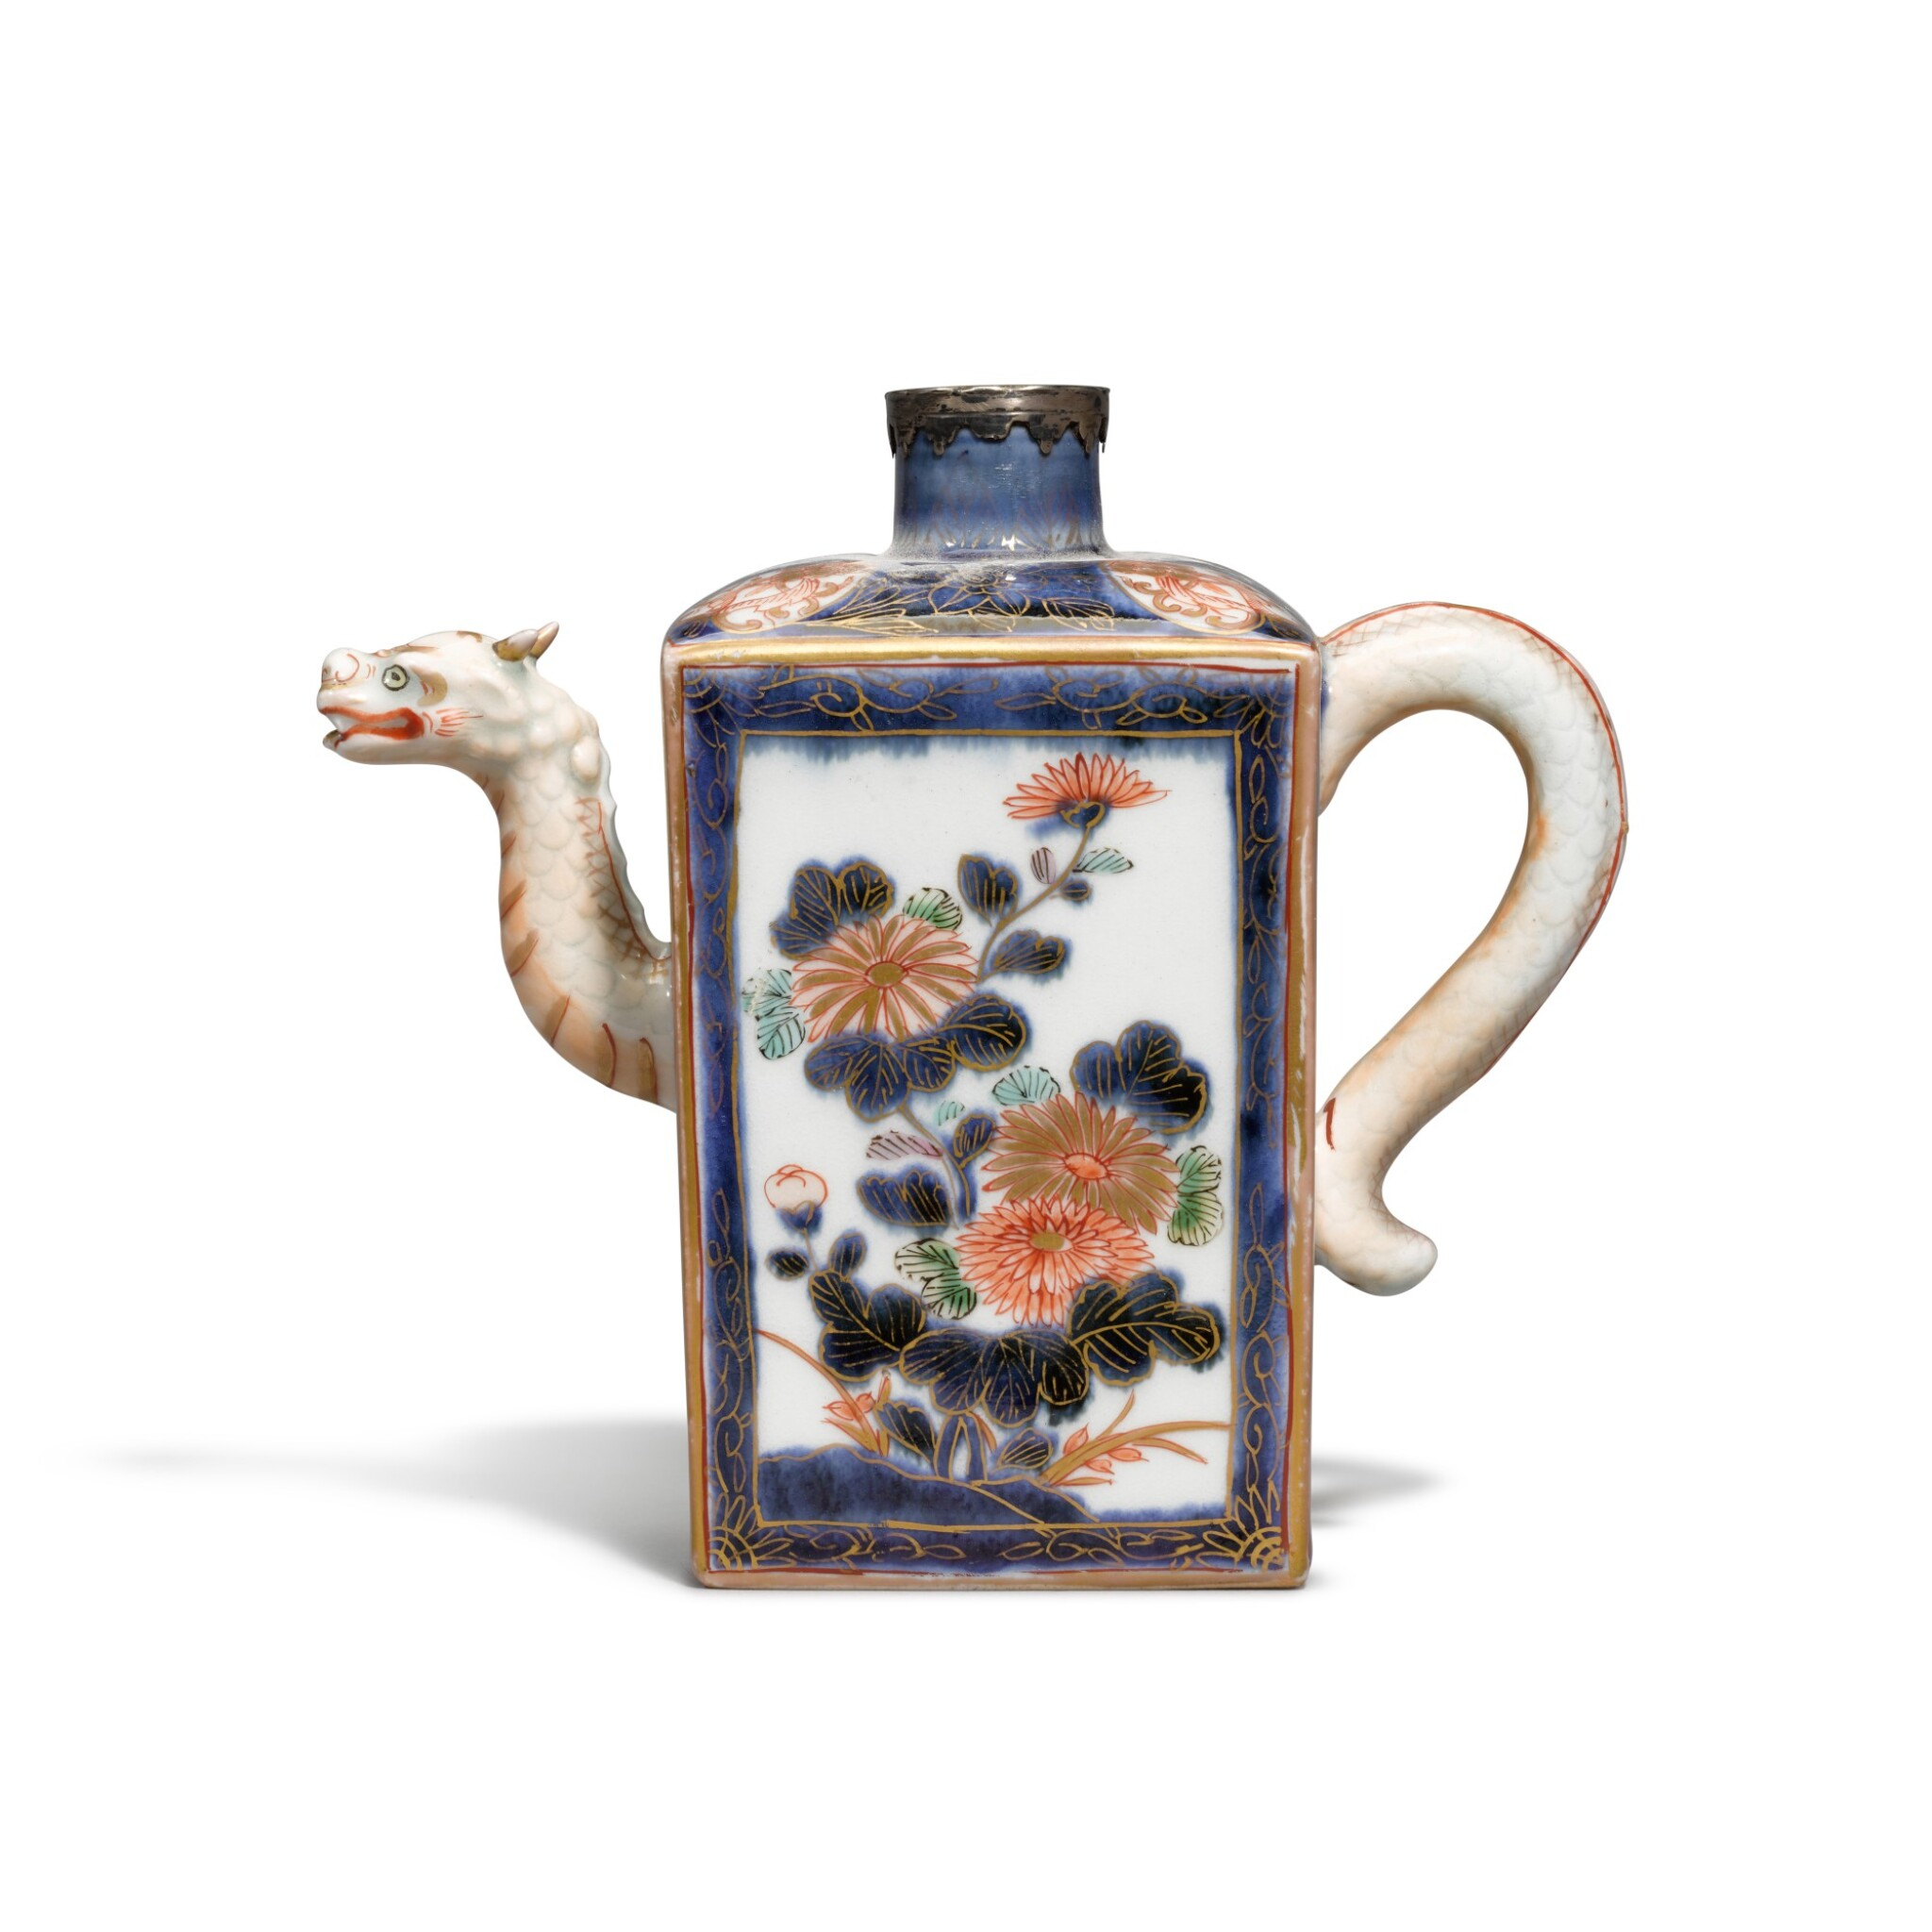 View full screen - View 1 of Lot 57. An Imari ewer with silver mount Edo period, late 17th - early 18th century.